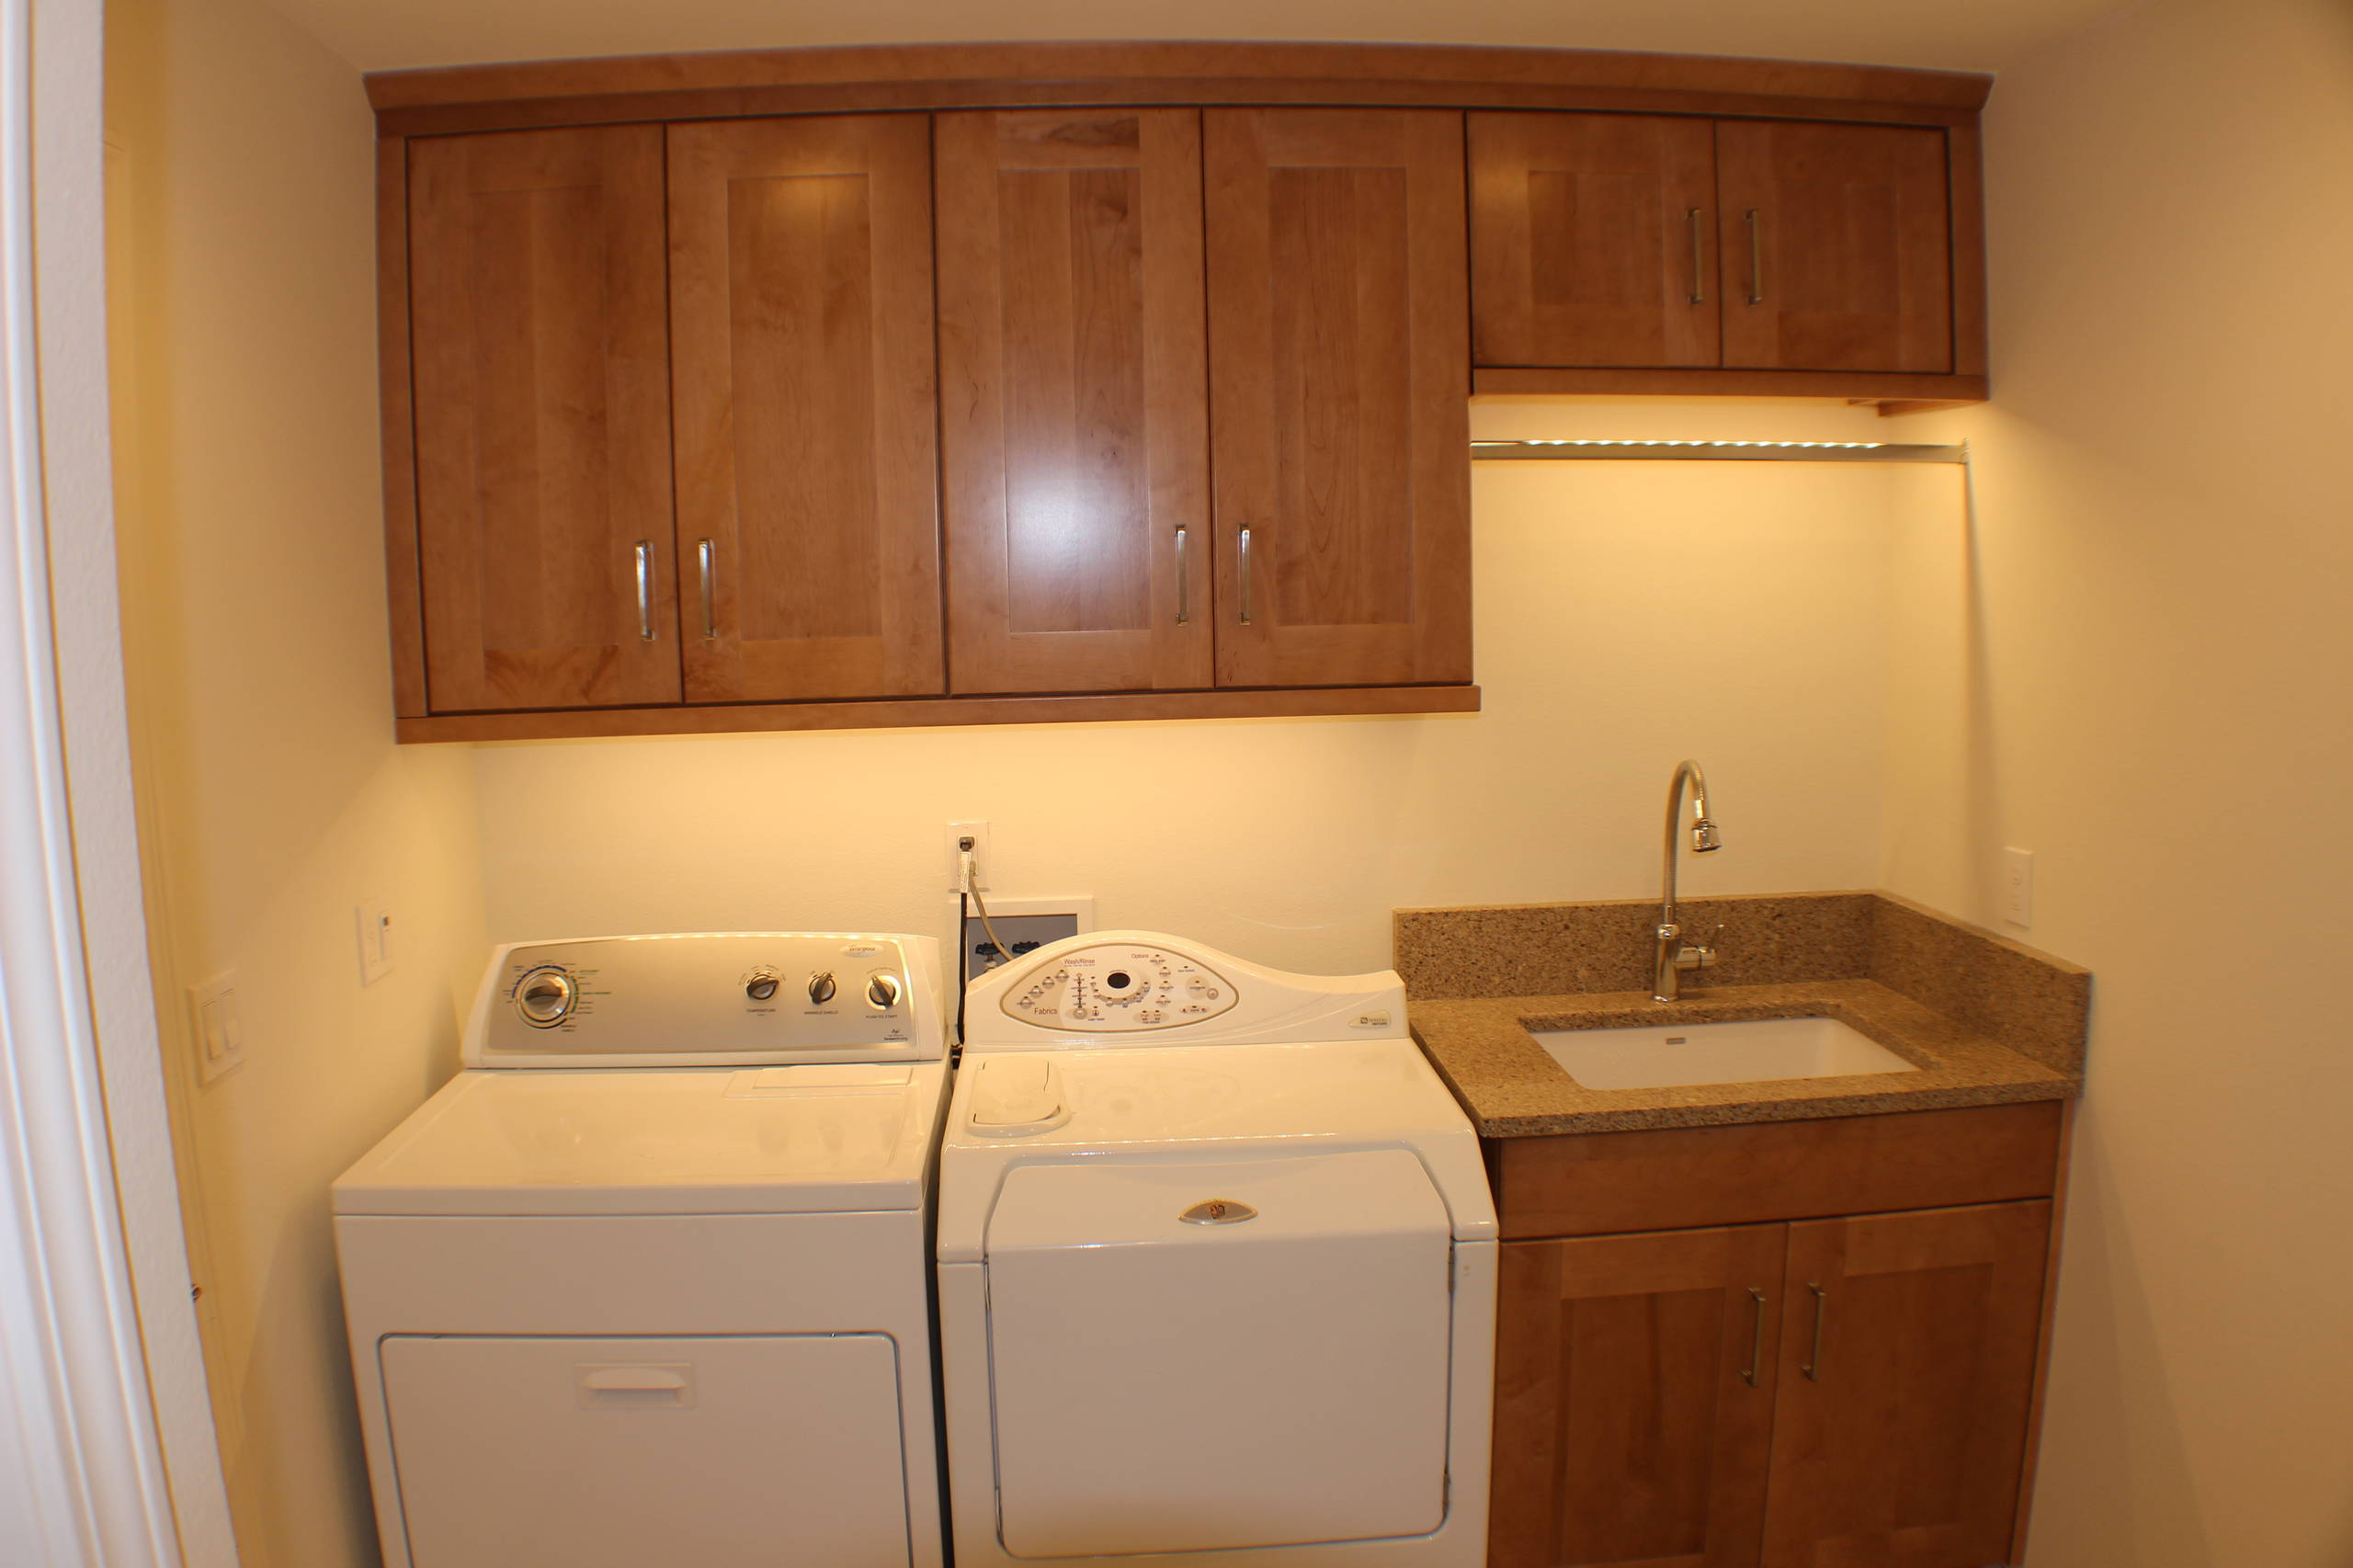 Featured Laundry Rooms